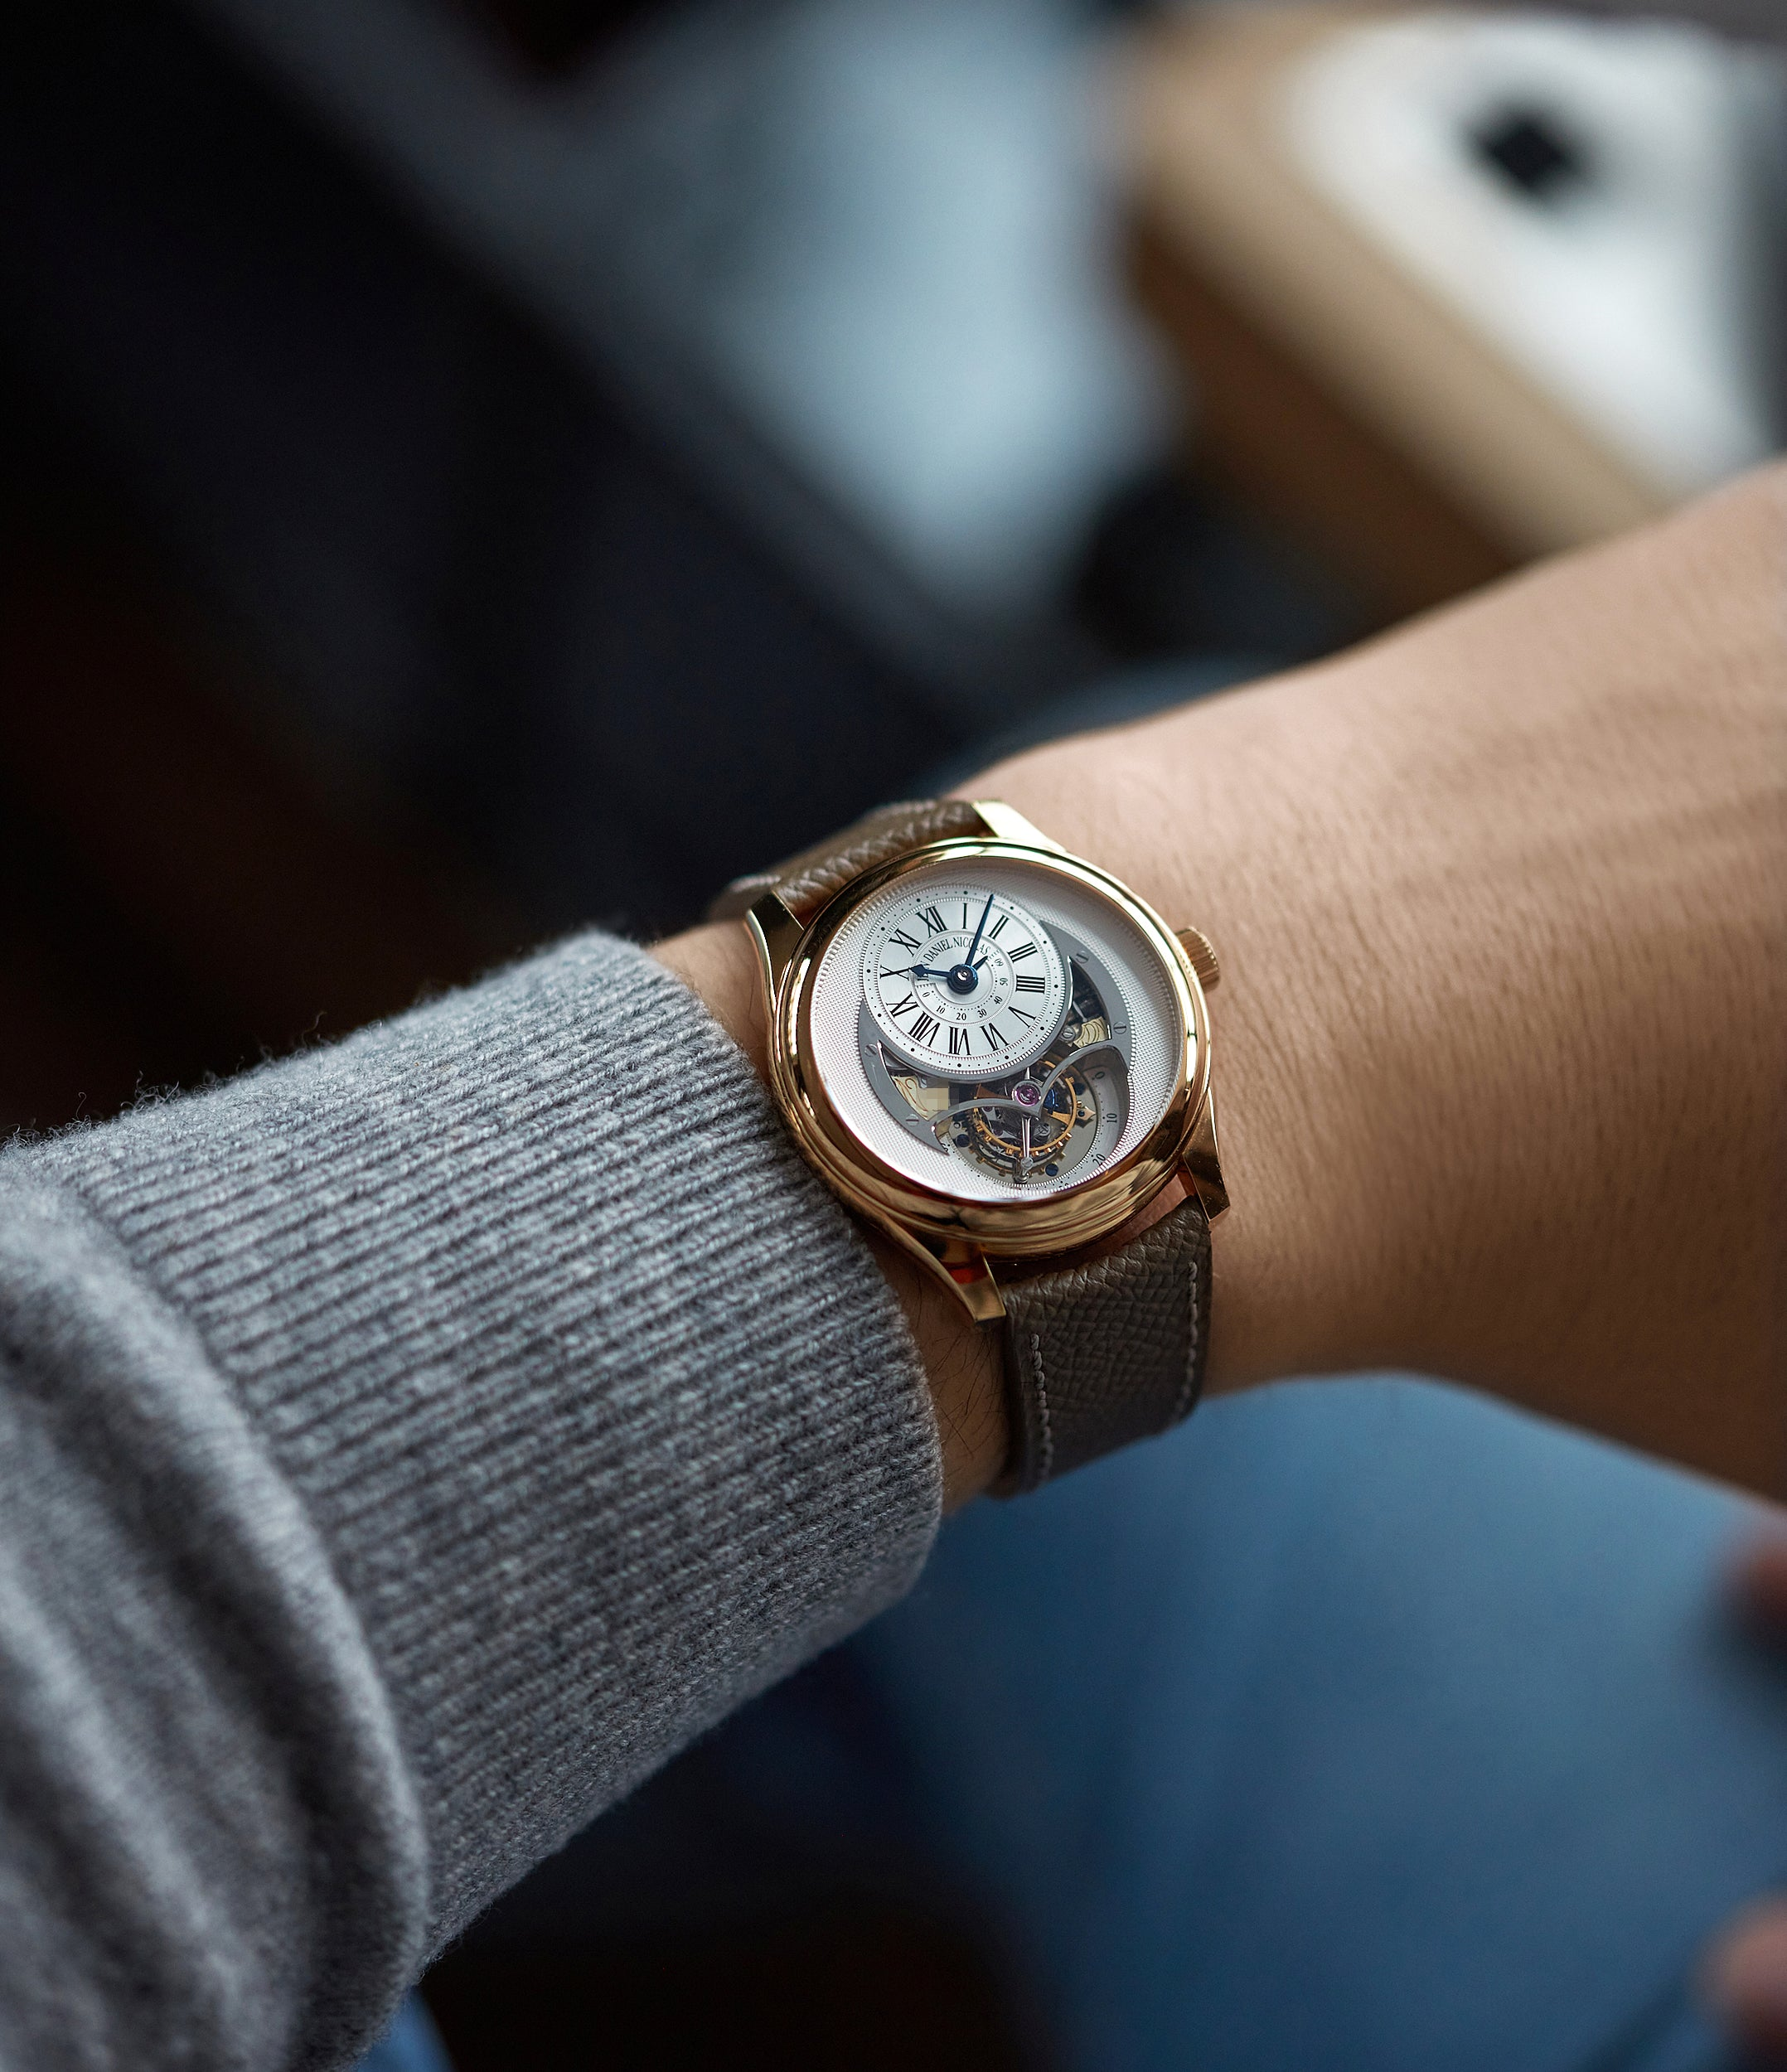 men's wristwatch Jean Daniel Nicolas Two-Minute Tourbillon by independent watchmaker Daniel Roth rose gold pre-owned rare watch for sale online A Collected Man London specialist of rare watches